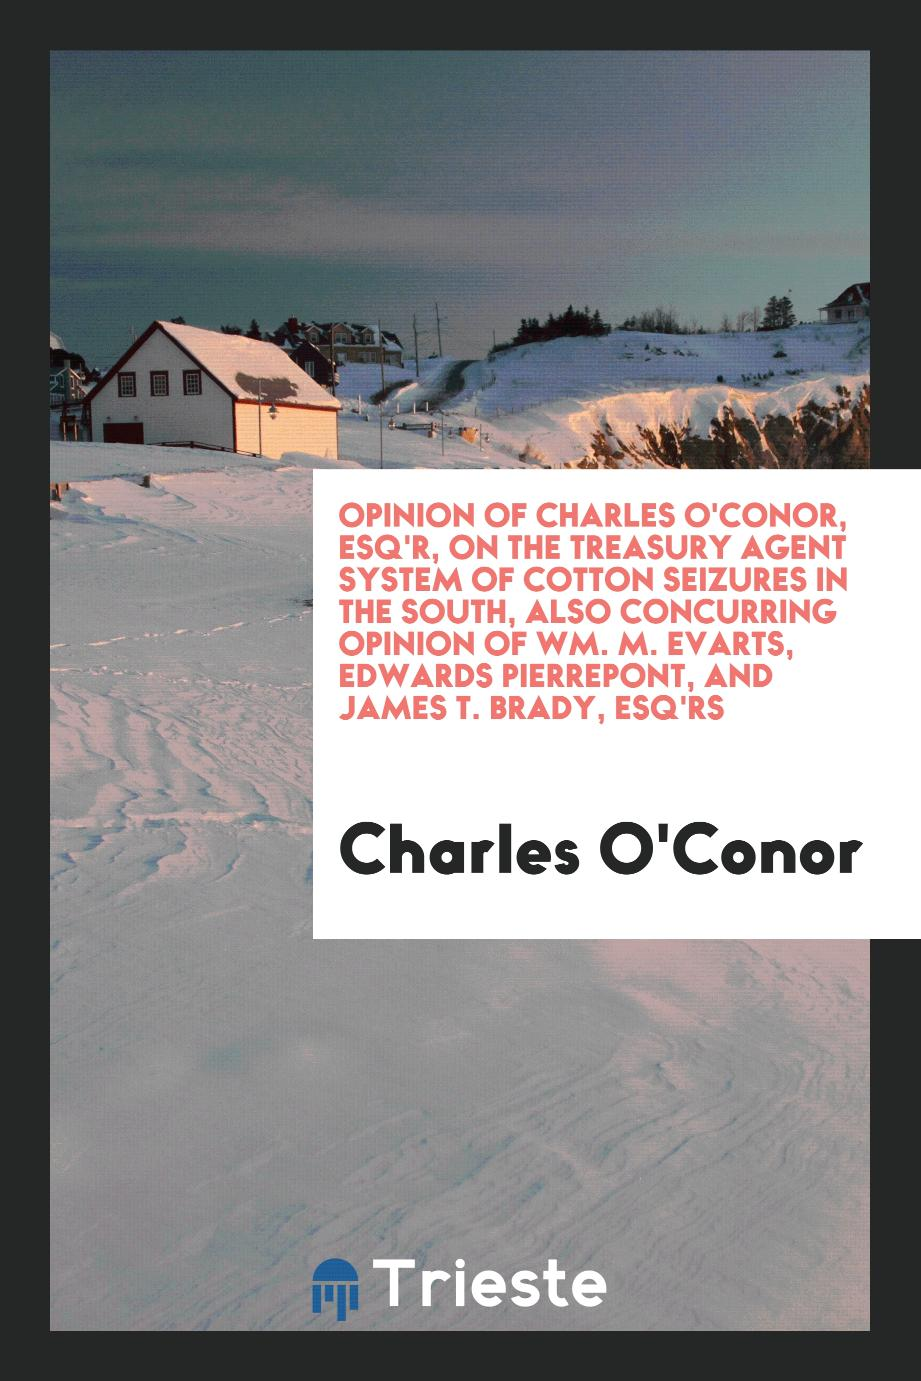 Opinion of Charles O'Conor, Esq'r, on the treasury agent system of cotton seizures in the South, also concurring opinion of Wm. M. Evarts, Edwards Pierrepont, and James T. Brady, Esq'rs